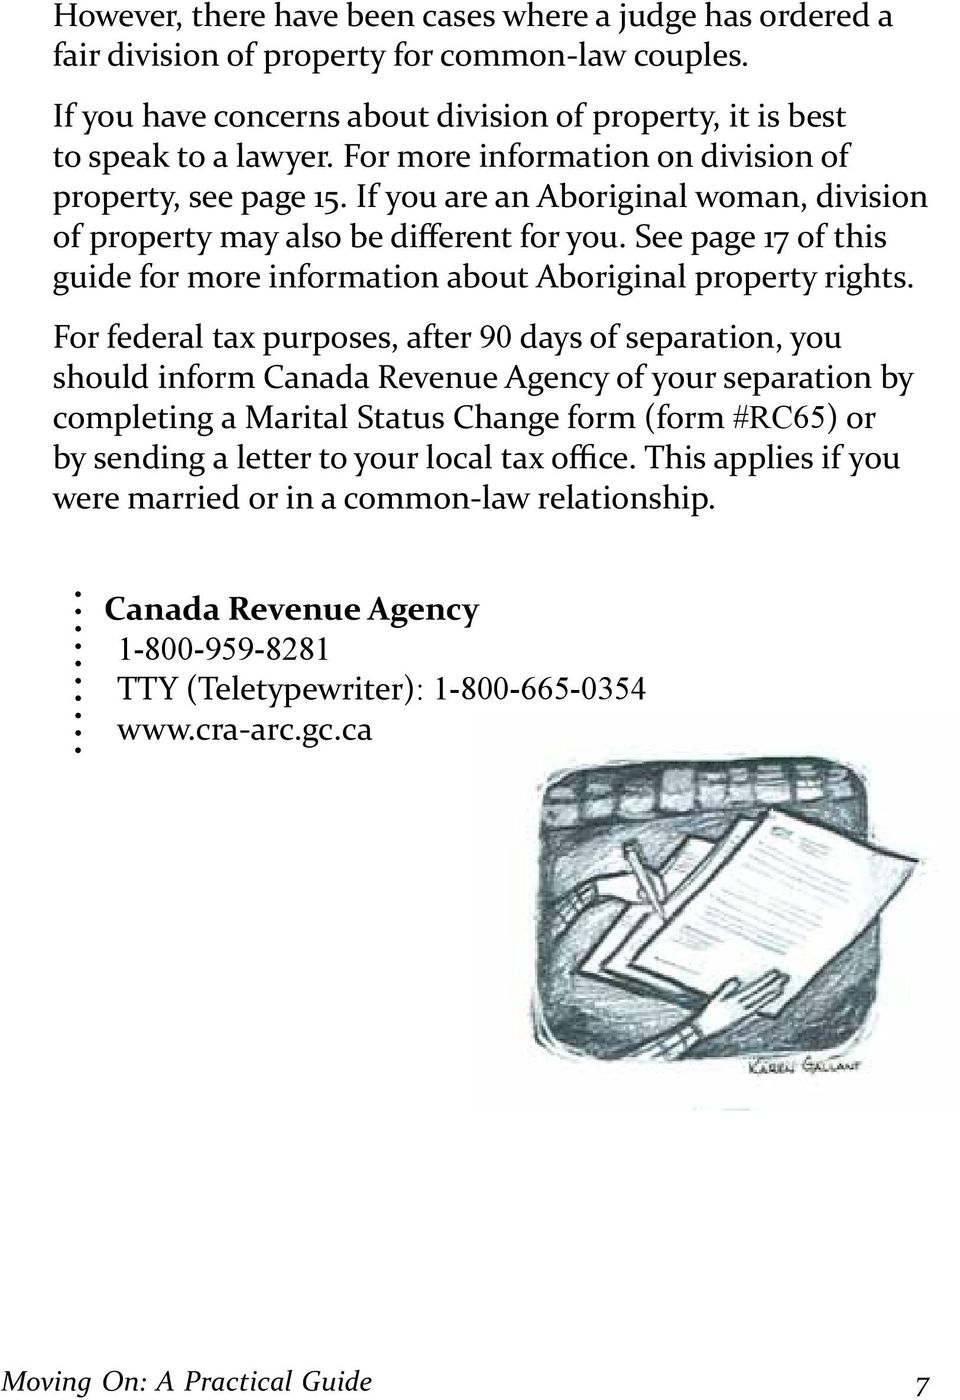 If you are an Aboriginal woman, division guide for more information about Aboriginal property rights.